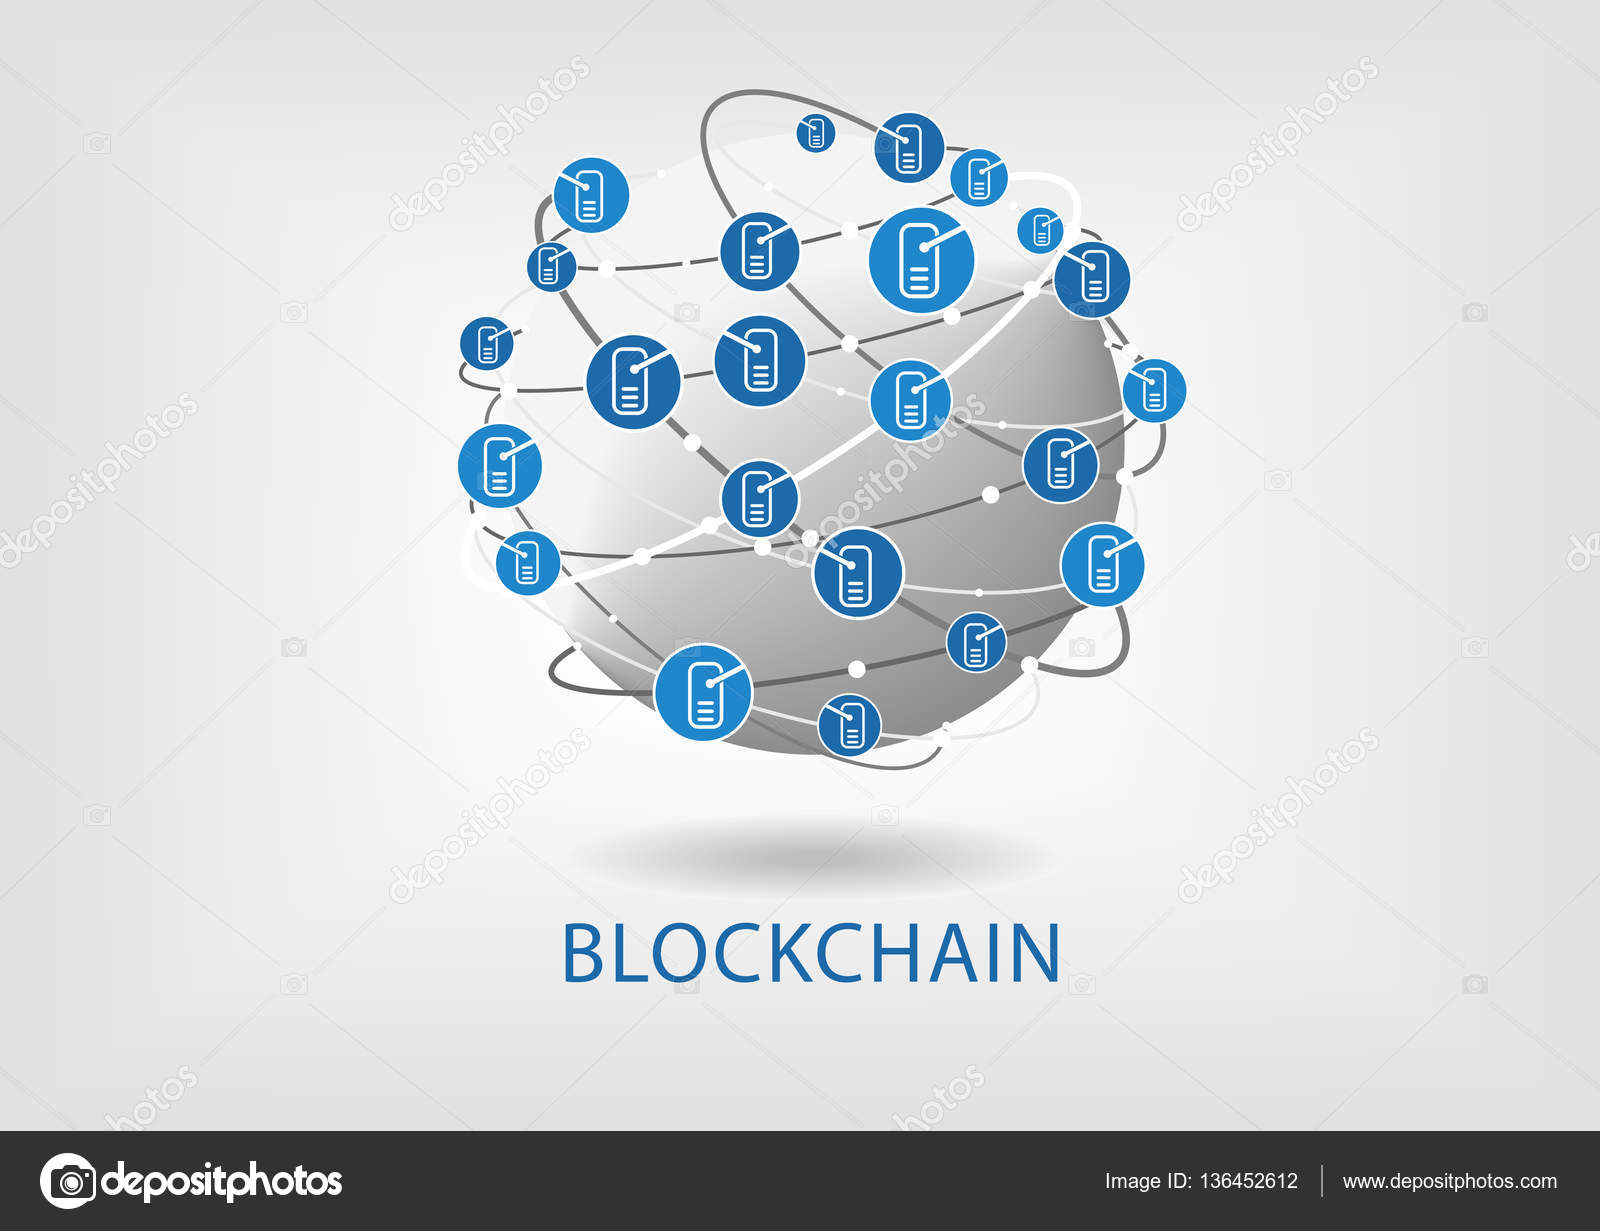 Blockchain Stock Vectors Royalty Free Illustrations Circuit Board Vector Background Graphics All Web Illustration With Connected Globe On Light Grey